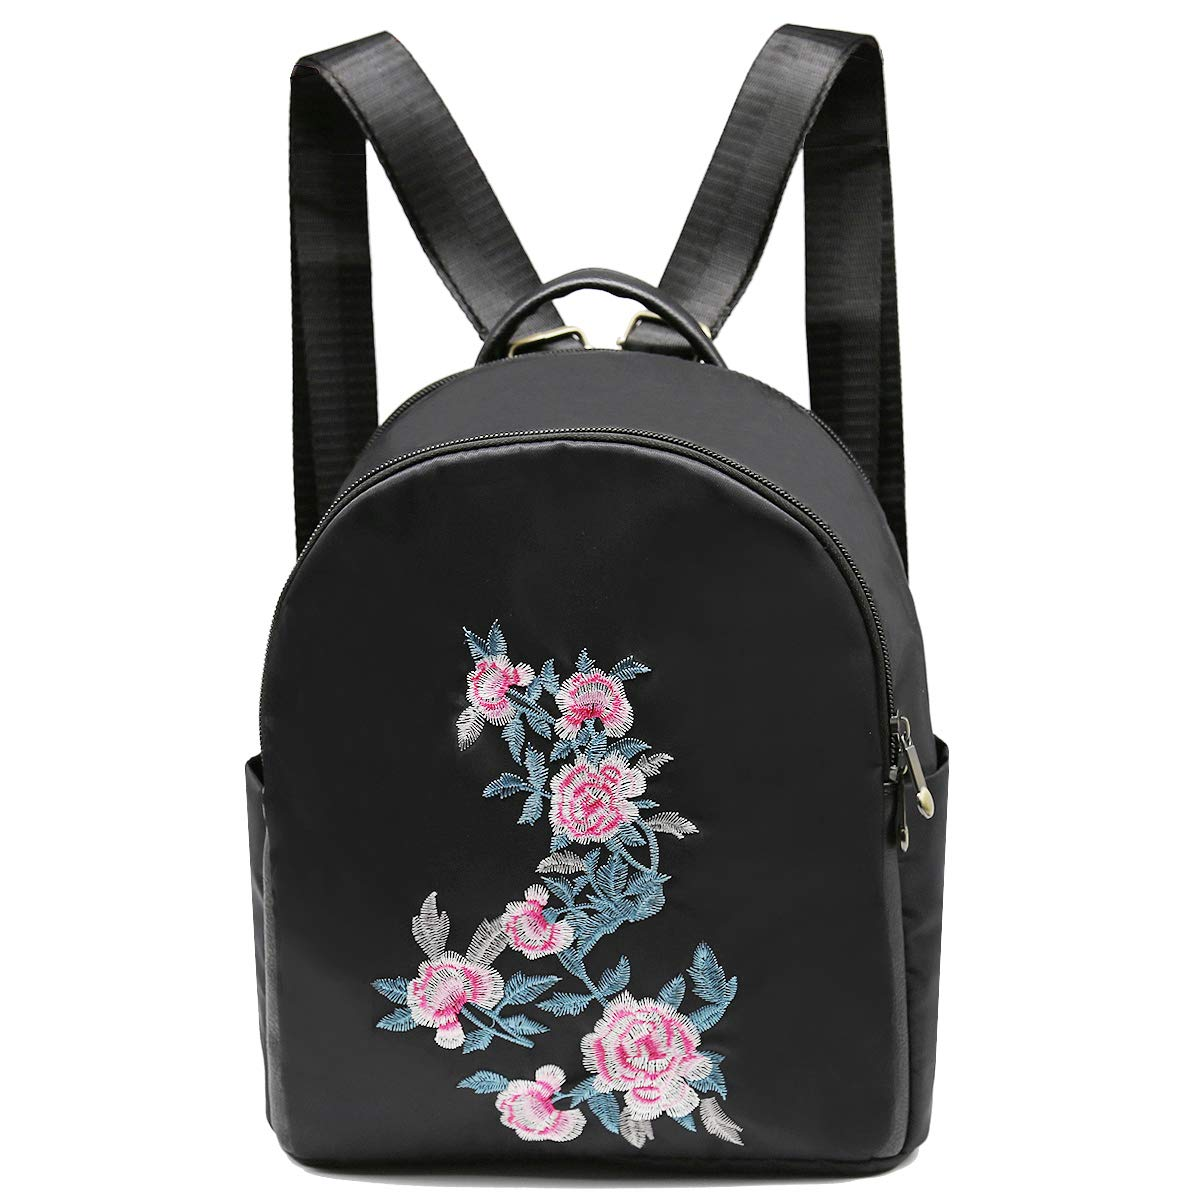 885c2b0e85d Cute Mini Backpack for Women,Embroidered Rose Backpack,Black Nylon Small  Traveling Backpack Bookbag for Girls